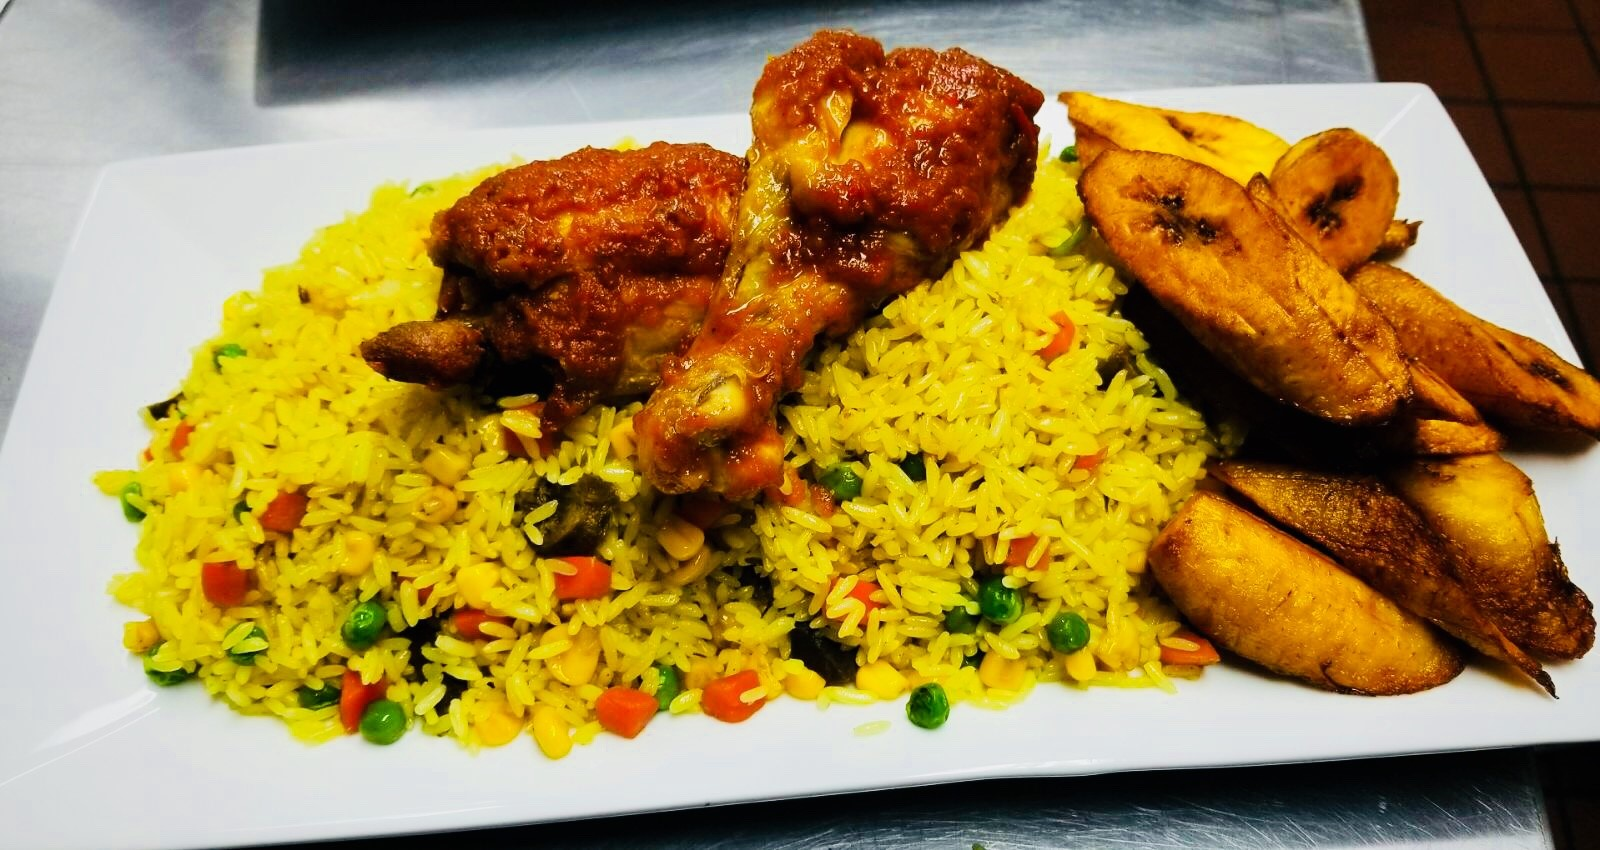 Fried Rice Family Meal $39.99  Contains 1/2 a tray of Fried Rice and 6 pieces of chicken.  Fried Rice is rice sautéed in our special curry sauce with mixed vegetables and chicken.  Pan size is 2 9/16 inches deep and 10 3/8 inches wide